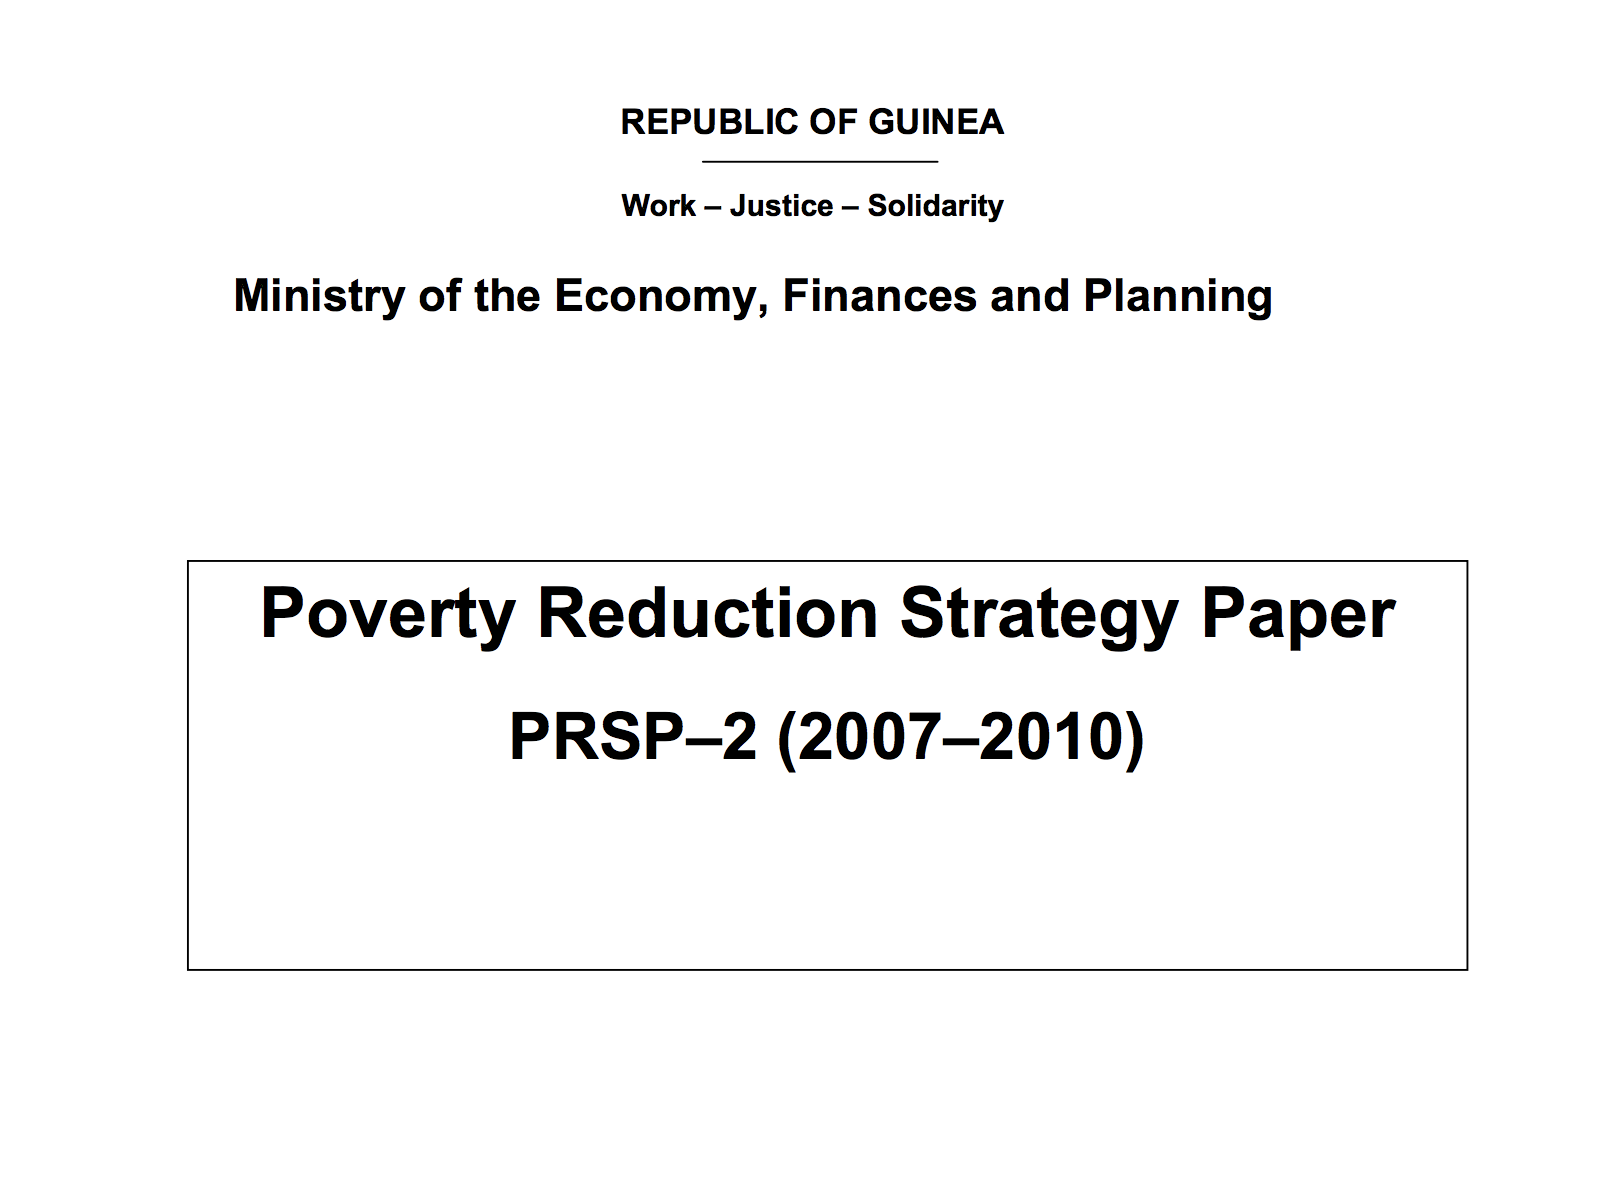 Guinea Poverty Reduction Strategy Paper Imf Country Report 08 07